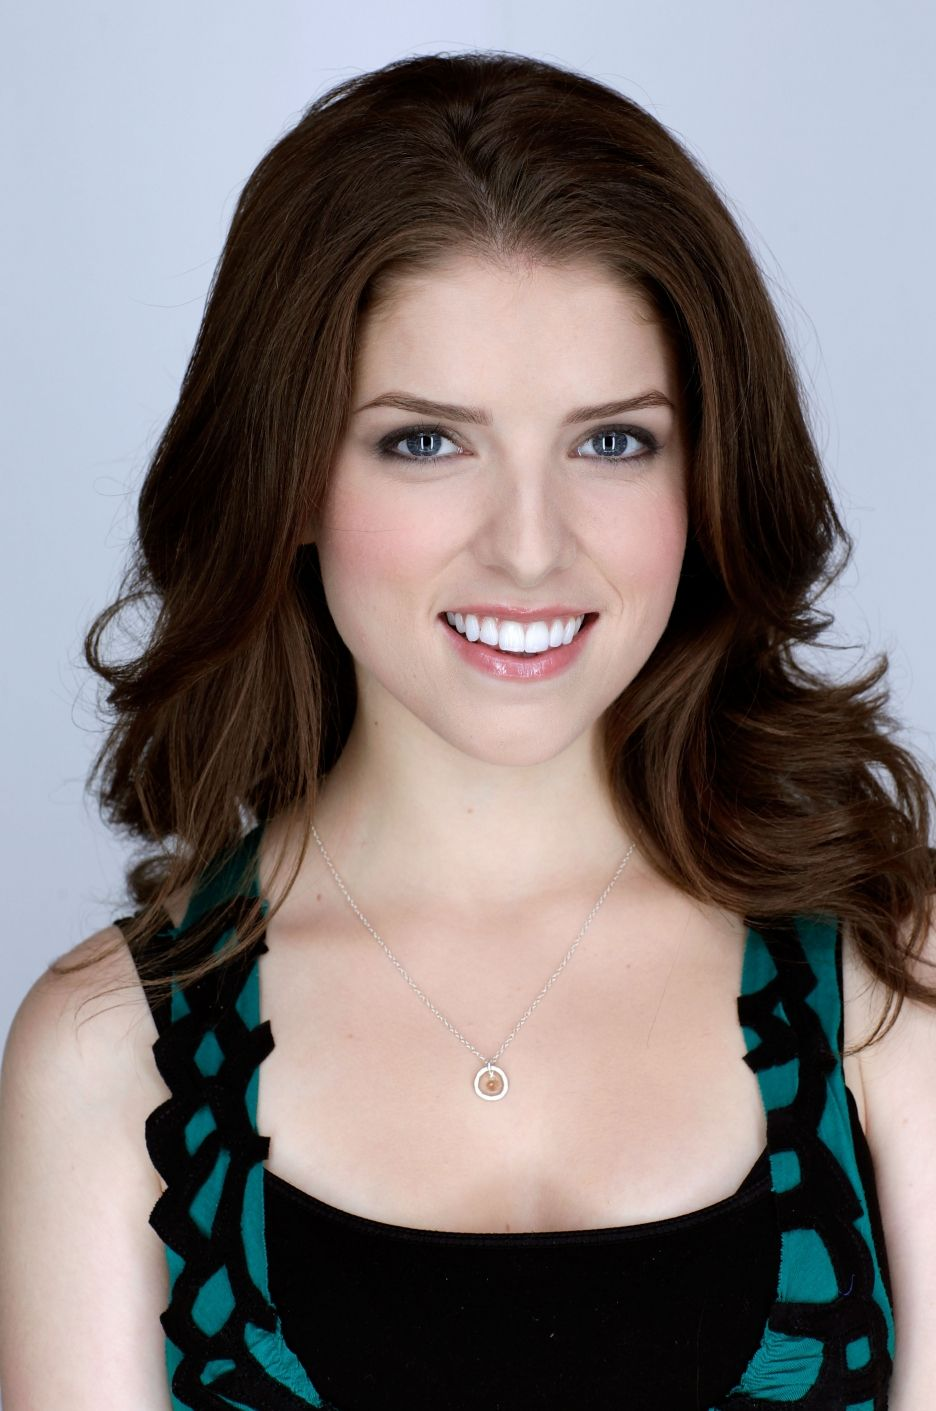 A Tony nominee at the age of 12, actress Anna Kendrick graduated from top honors